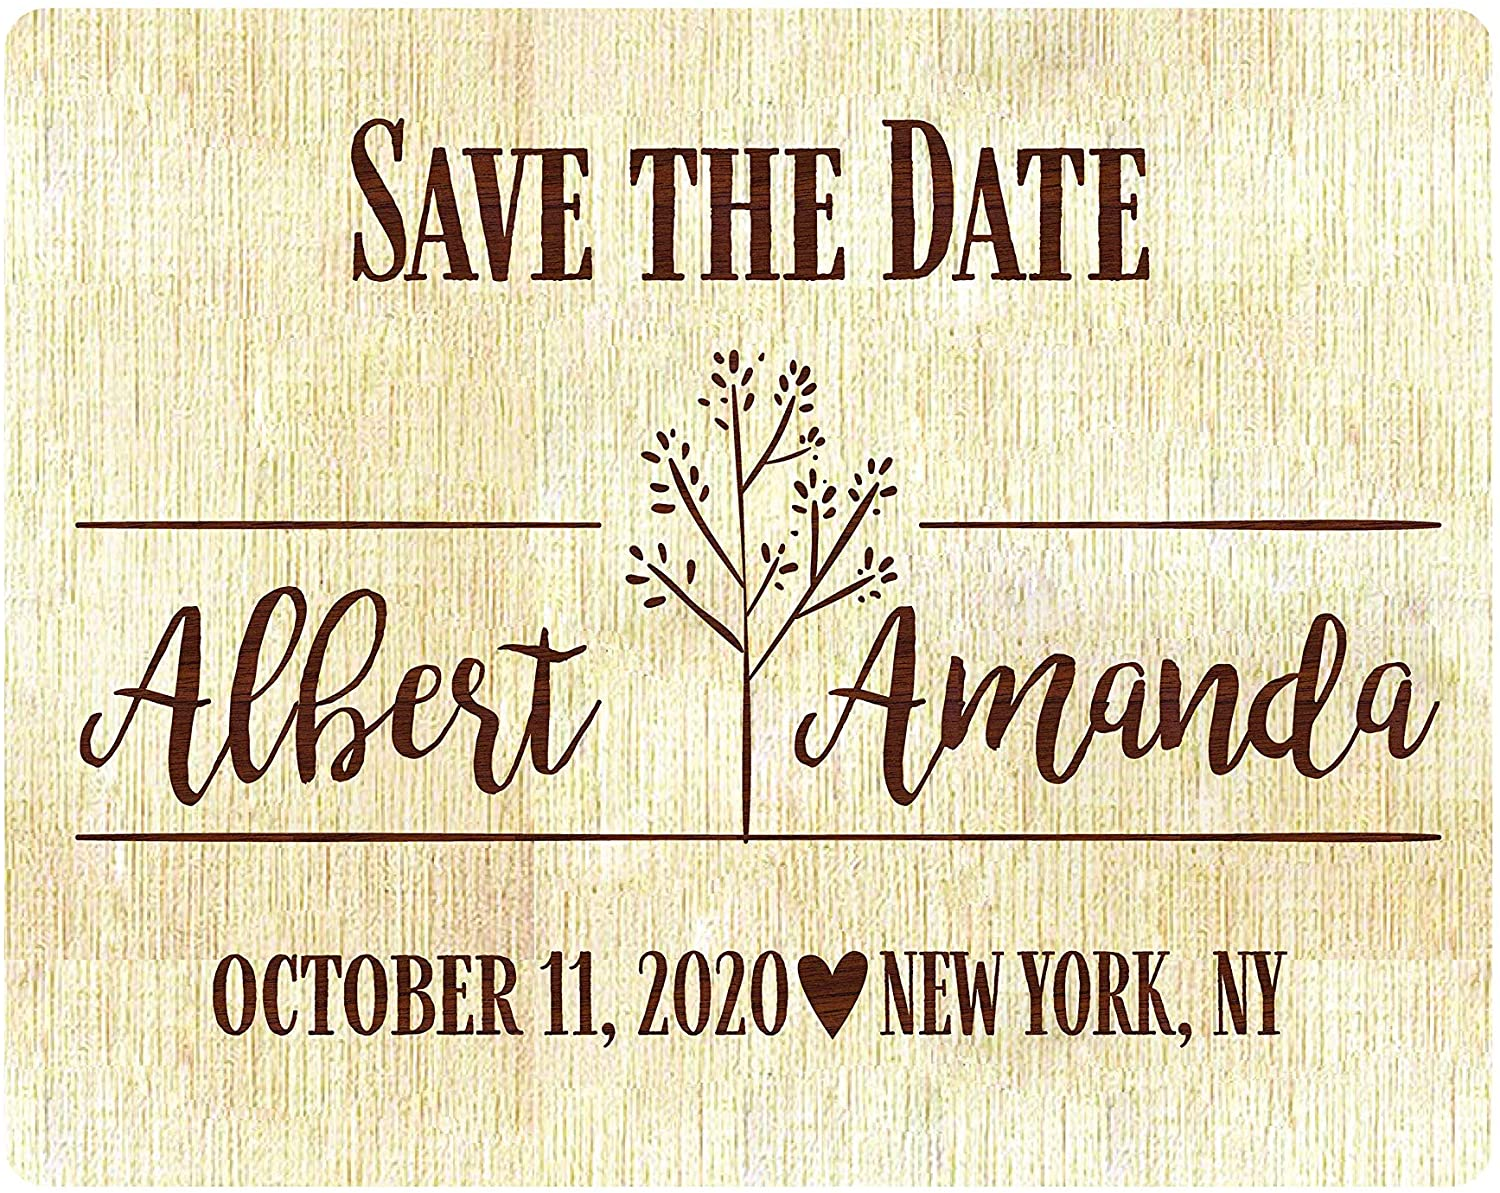 Wedding Invitations Personalized Wood Engraved Save The Date, Personalized Magnet Invitation, Custom Engraved Save The Date Wedding Announcement, or Engagement, Anniversary (Design 01, 1)